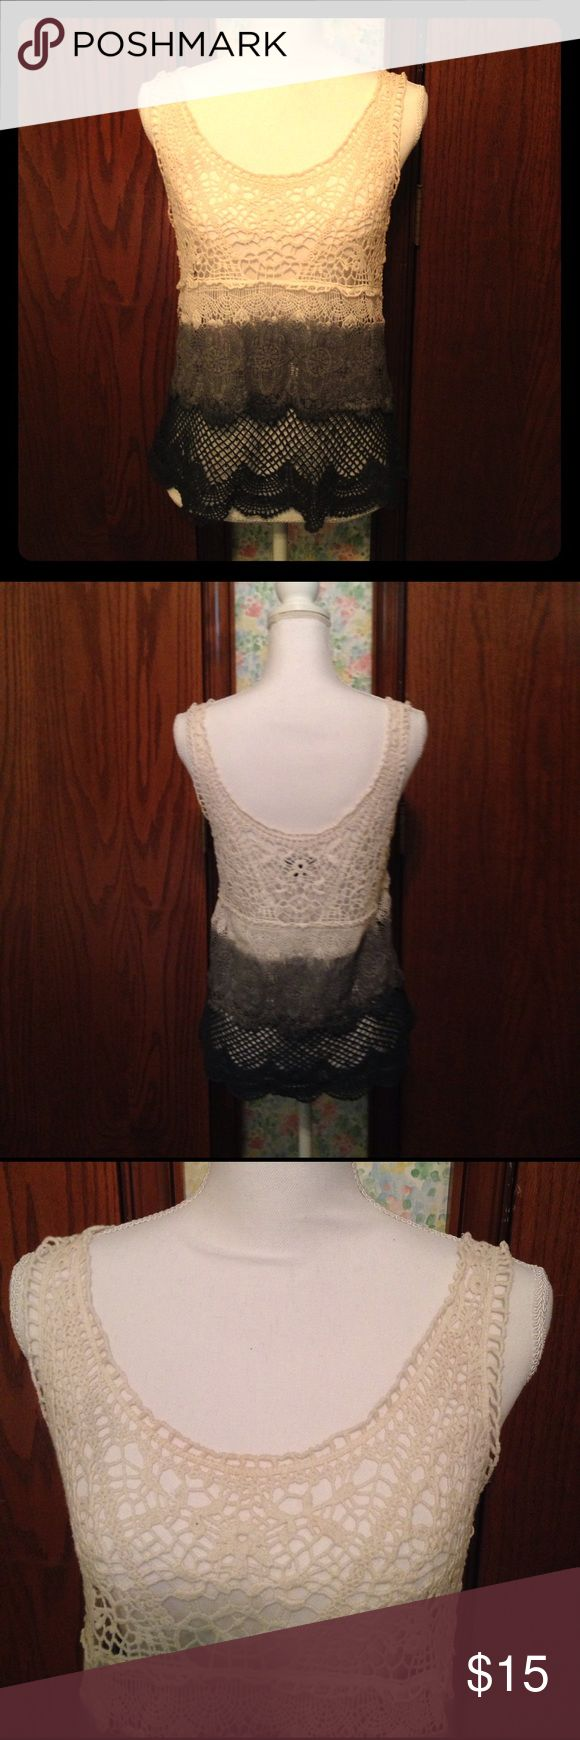 American Eagle Outfitters Crochet Top Crochet Tank Top with ruffled look.  Recommend to hand wash in cold water and dry flat. Excellent condition. American Eagle Outfitters Tops Tank Tops